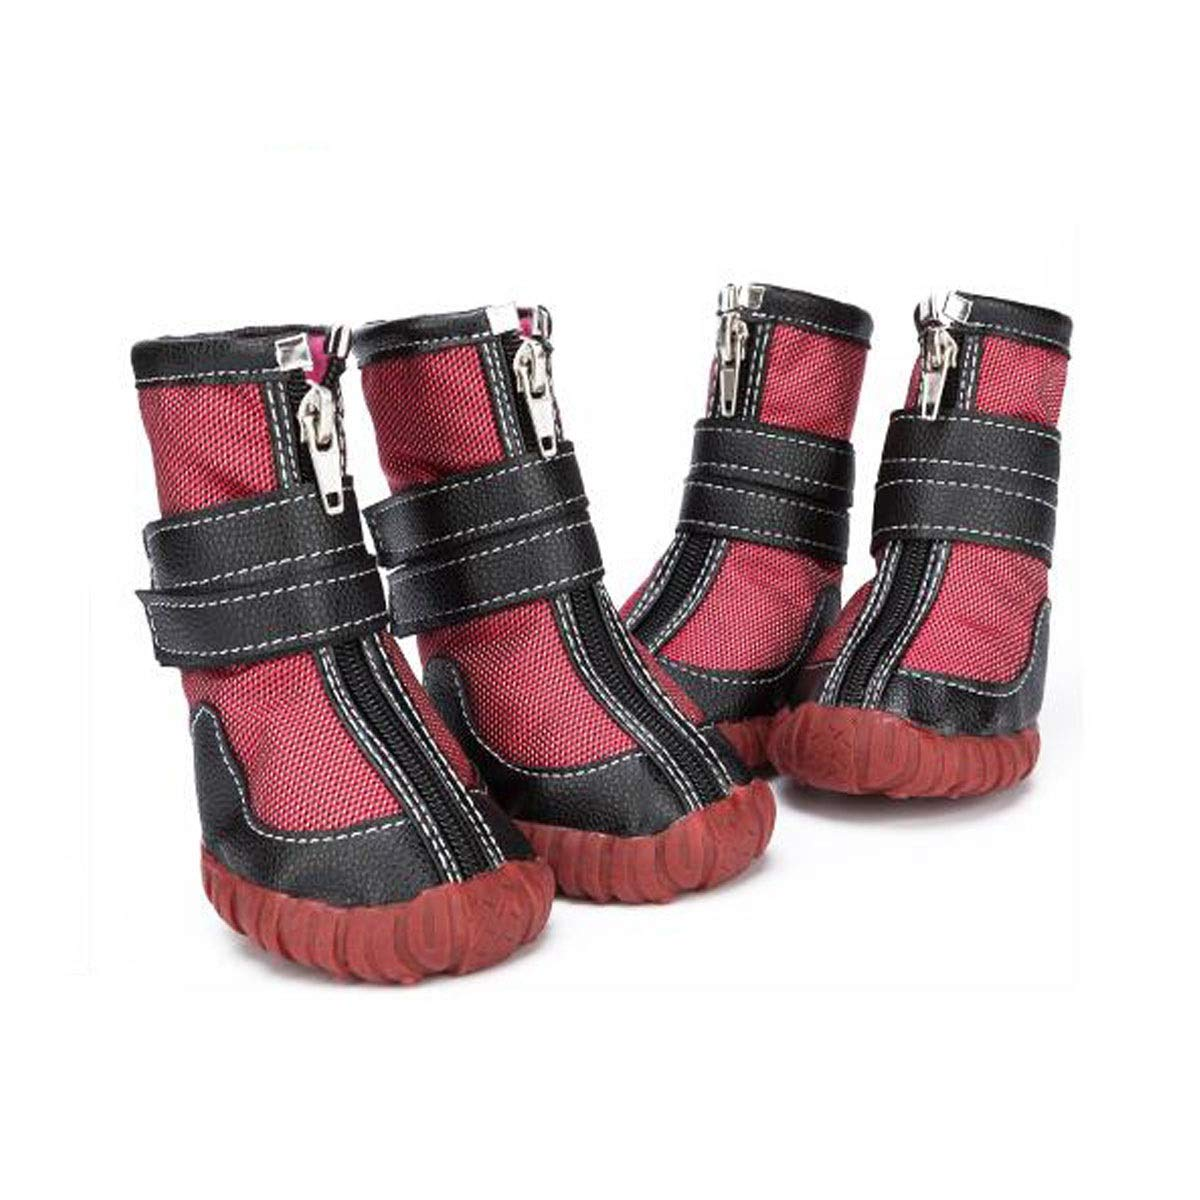 Red 12  Red 12  Dog shoes, Dog Rain Boots, Waterproof shoes, Breathable shoes, Large Dogs, Waterproof Non-Slip shoes, Pet Supplies, Red, bluee, Brown 9 -12  (color   Red, Size   12 )